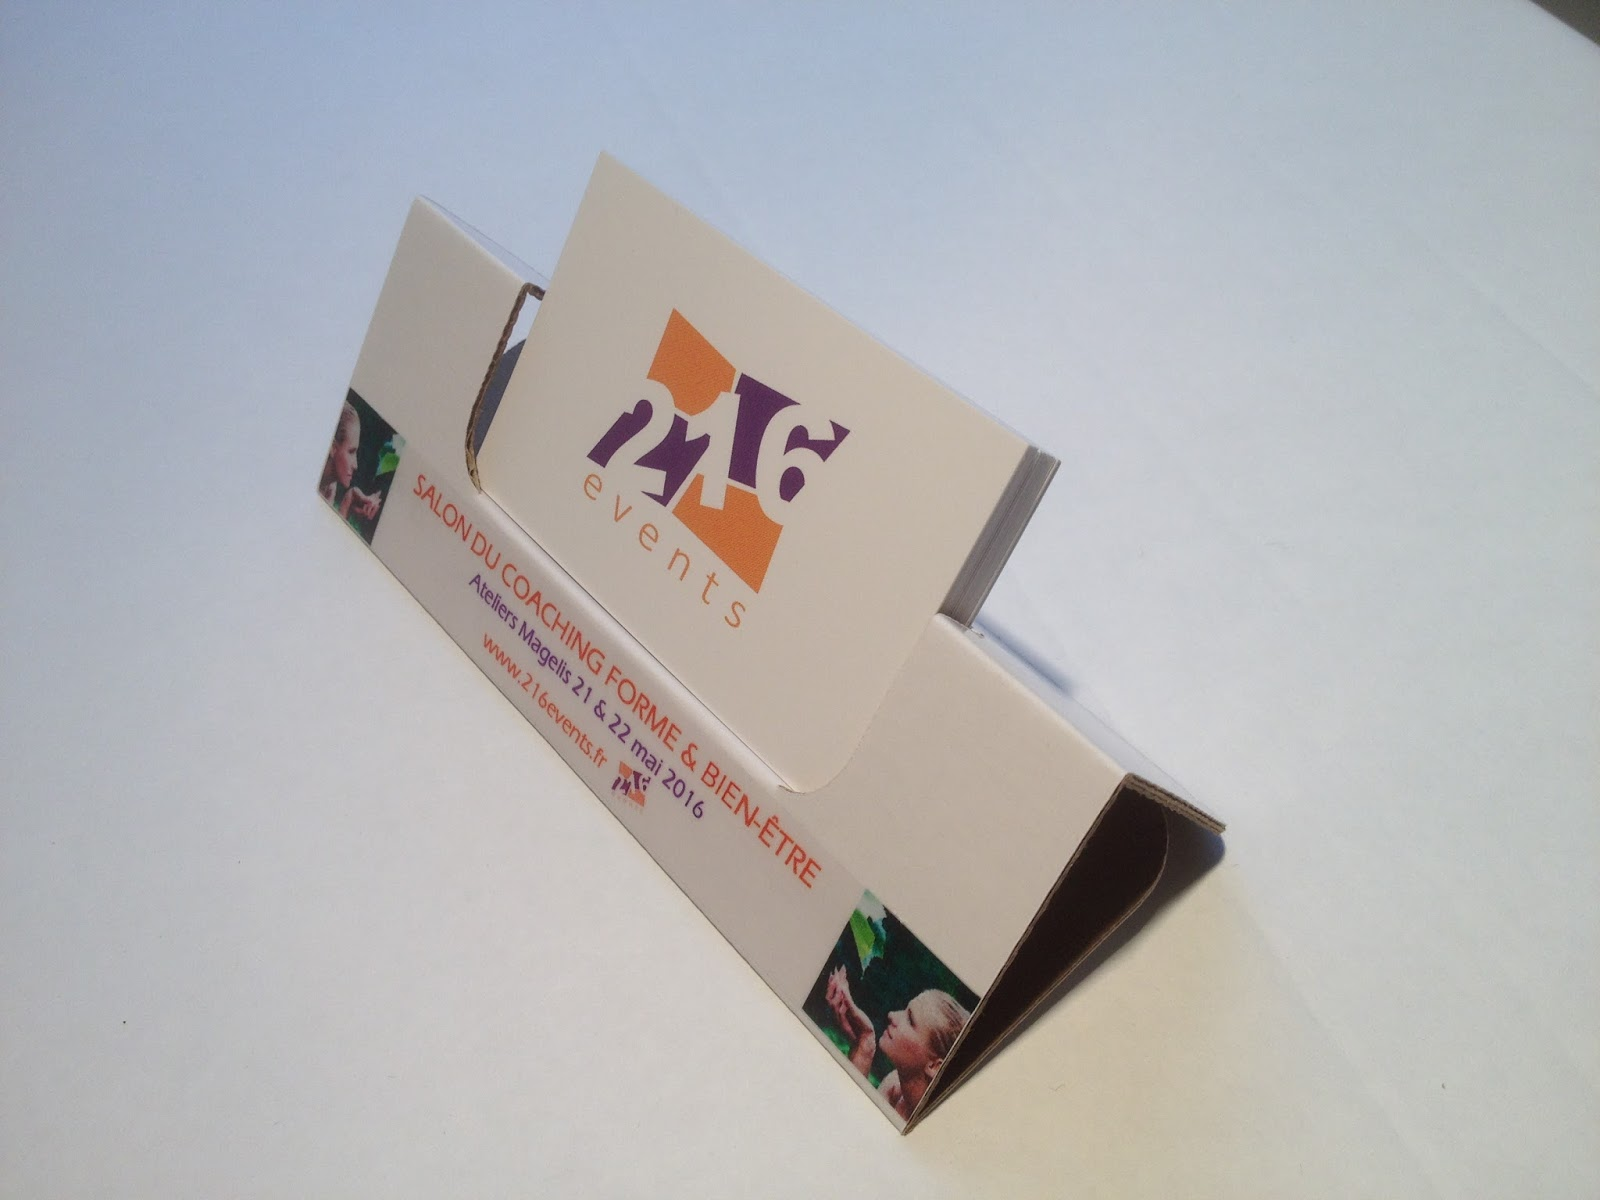 Cartes De Visites En Carton Option